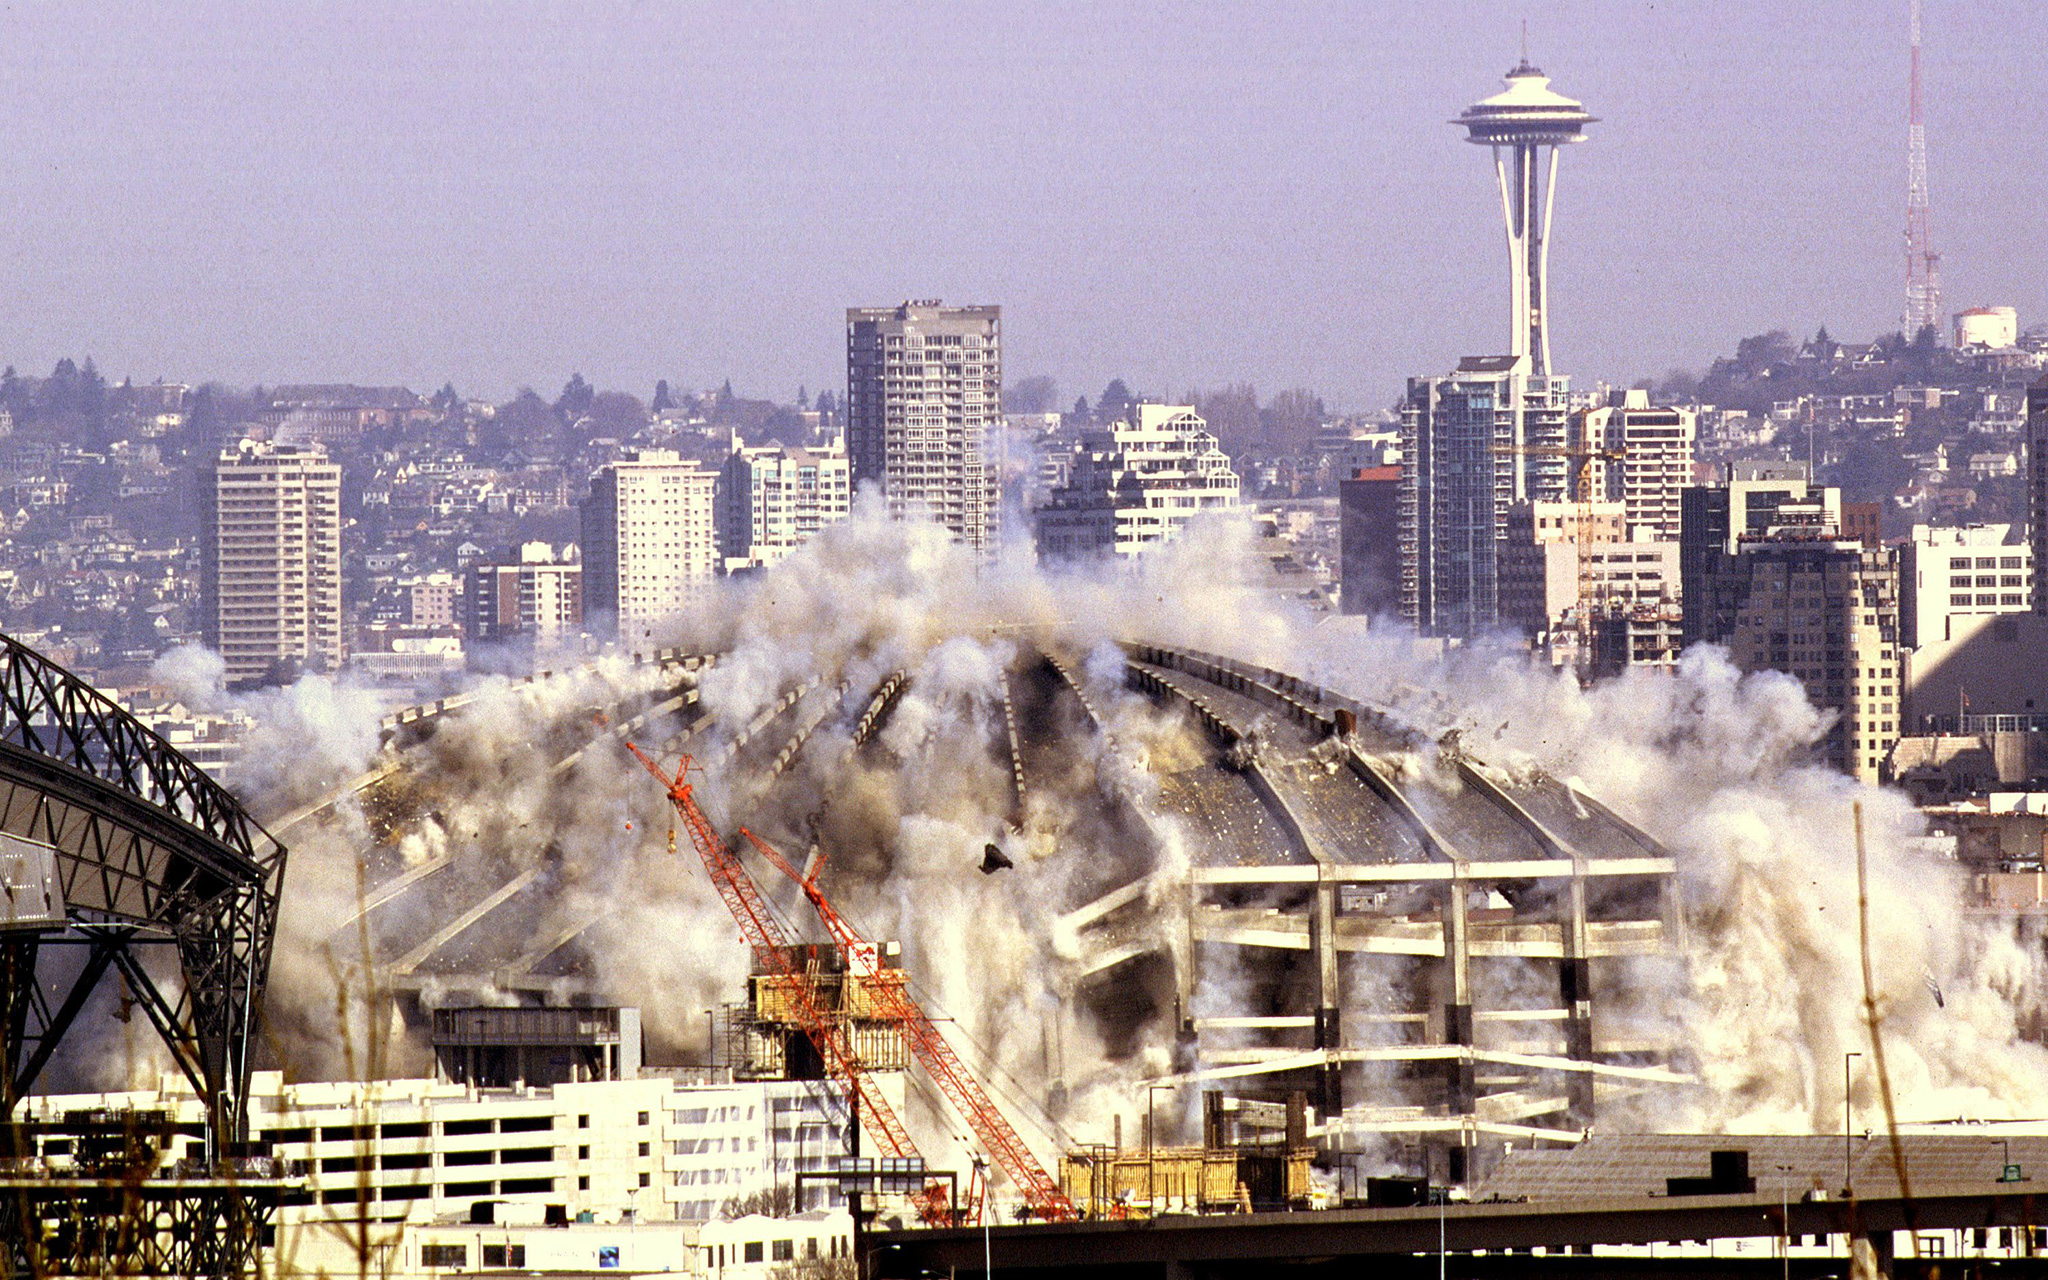 The Kingdome: 1976-2000